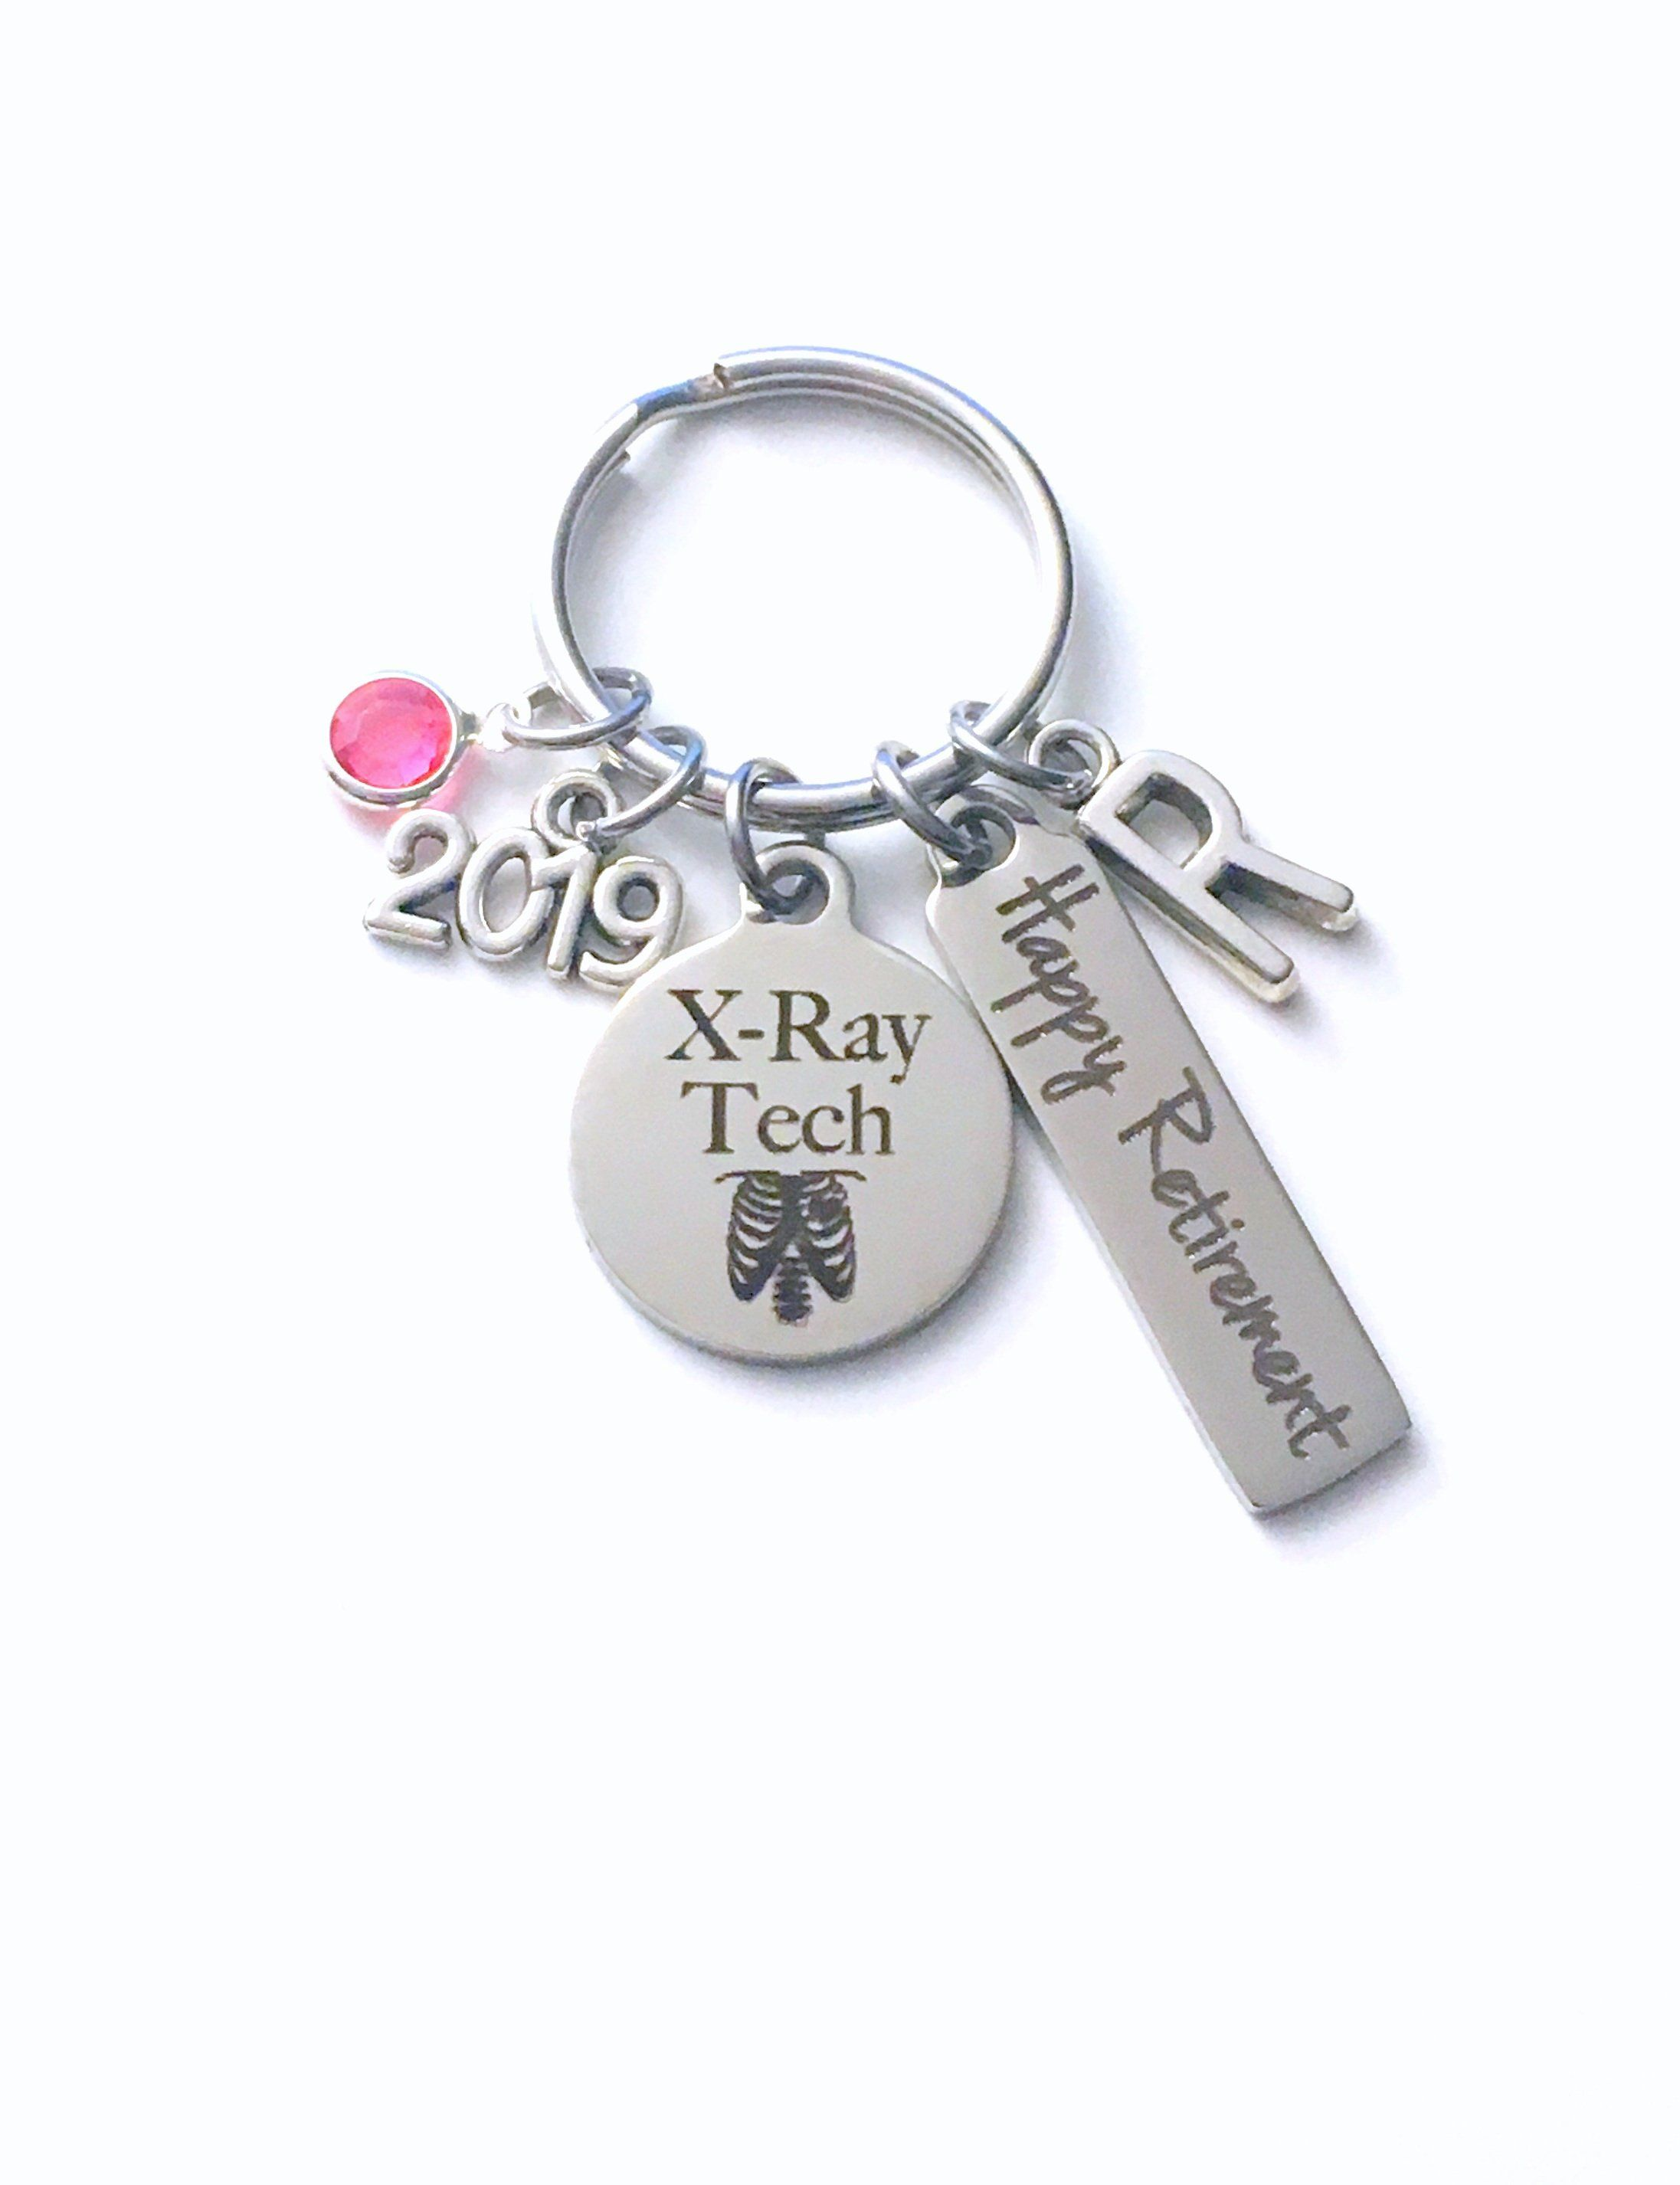 XRay Tech Retirement Gift Key Chain cc801f27a6